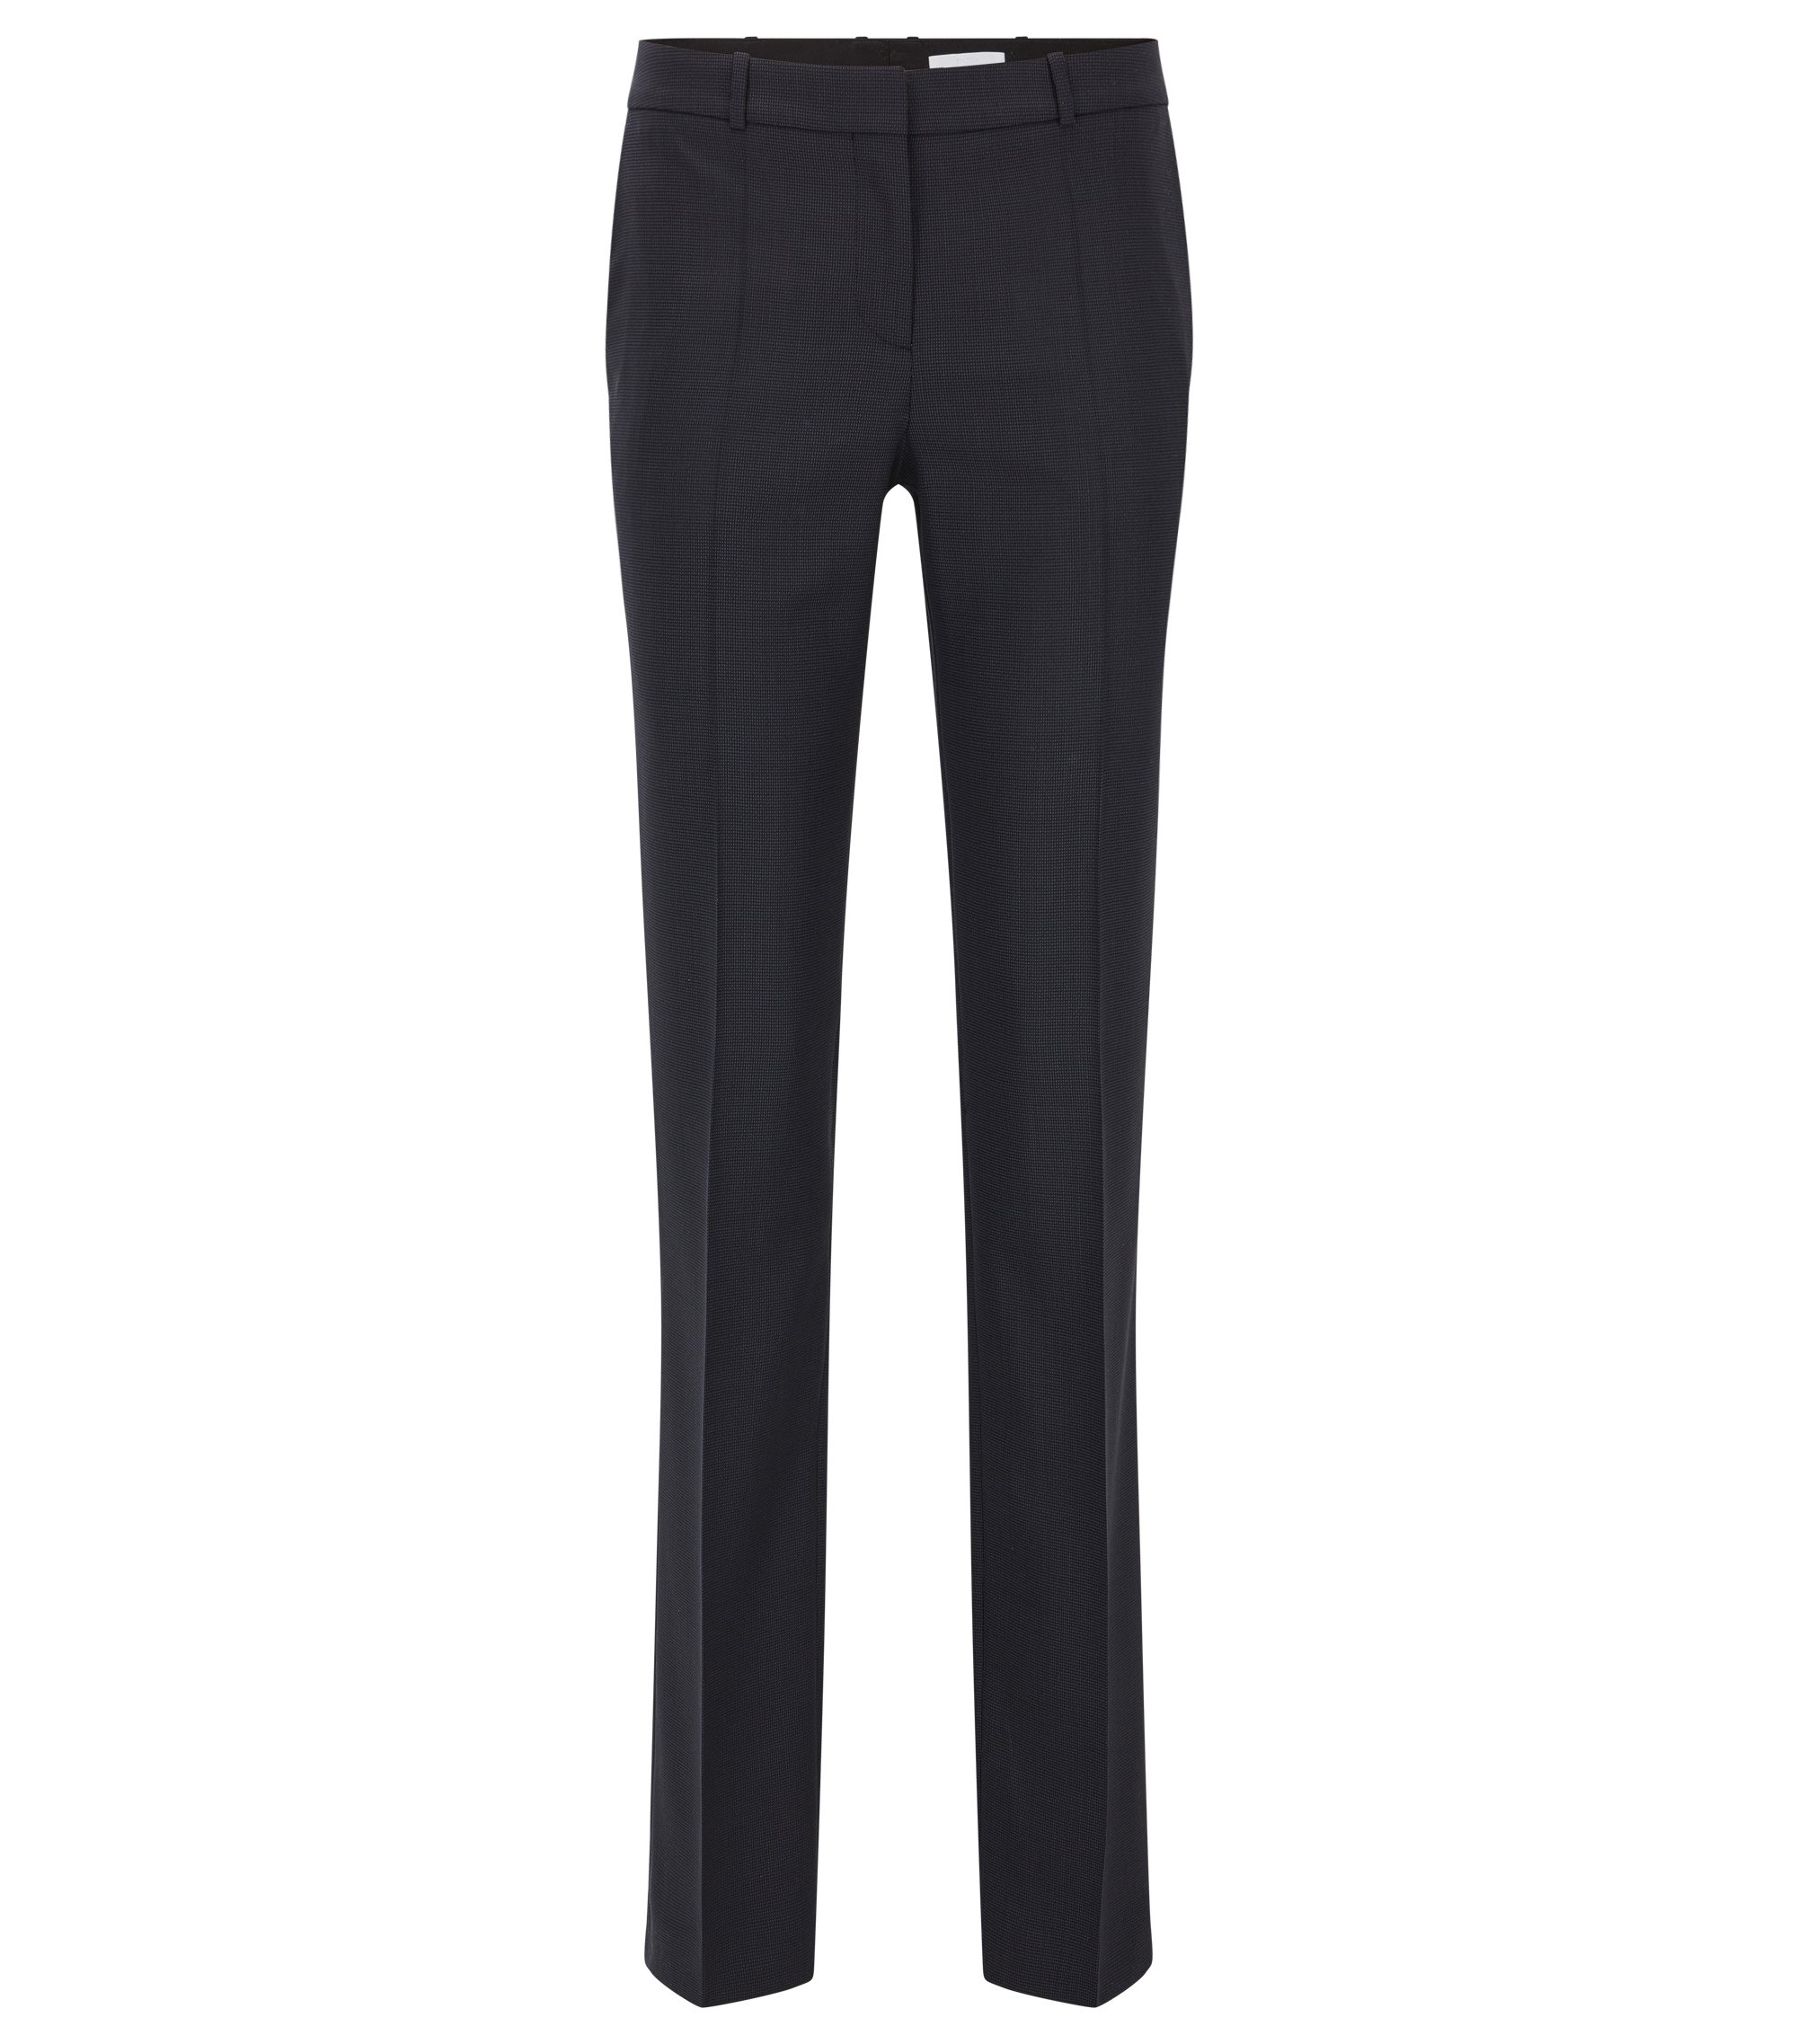 Pantalon Regular Fit en laine vierge stretch, Fantaisie